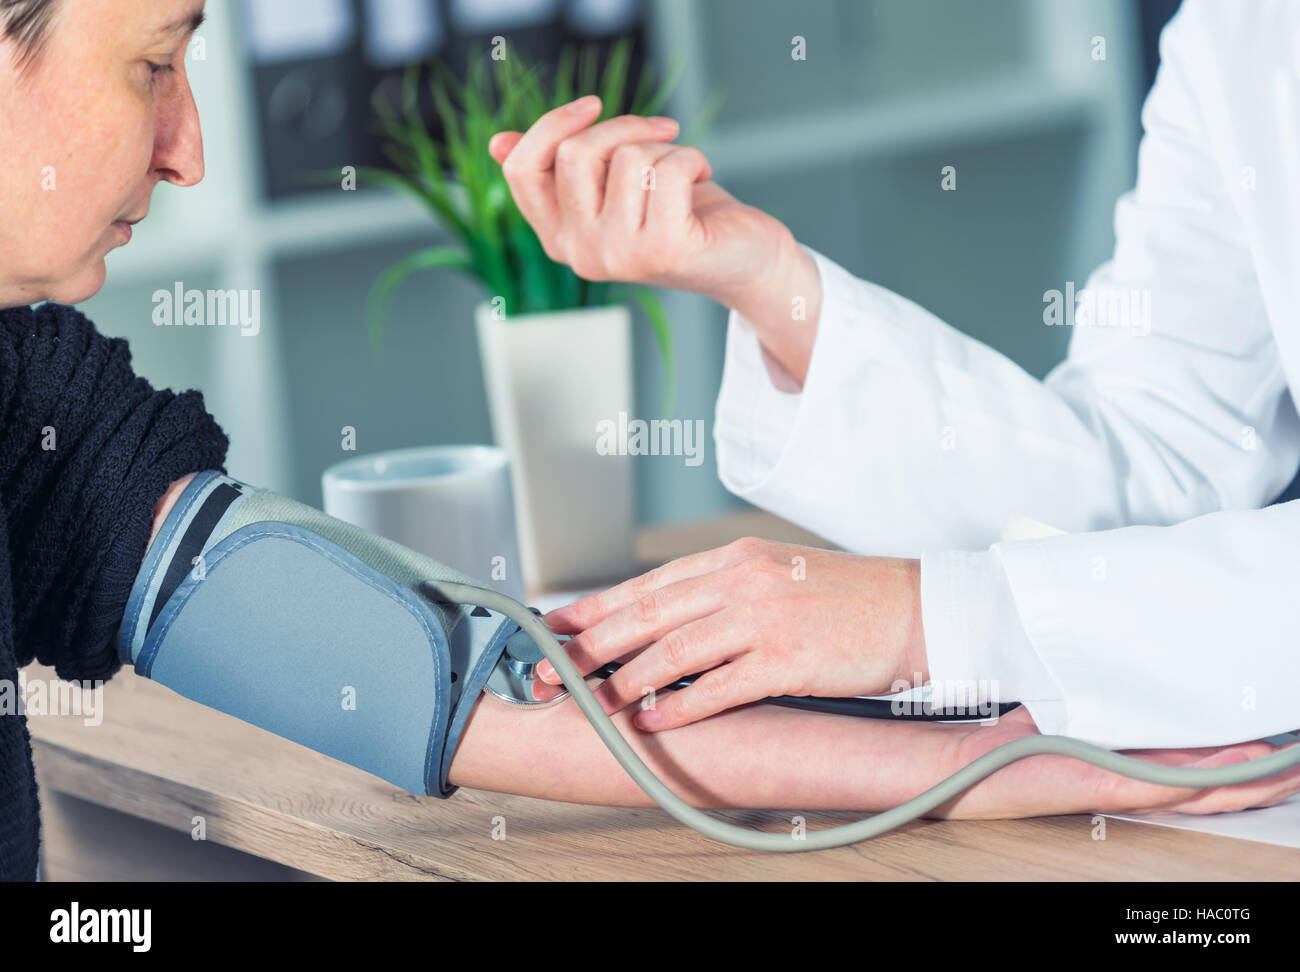 Doctor cardiologist measuring blood pressure of female patient in hospital office, health care control and monitoring - Stock Image